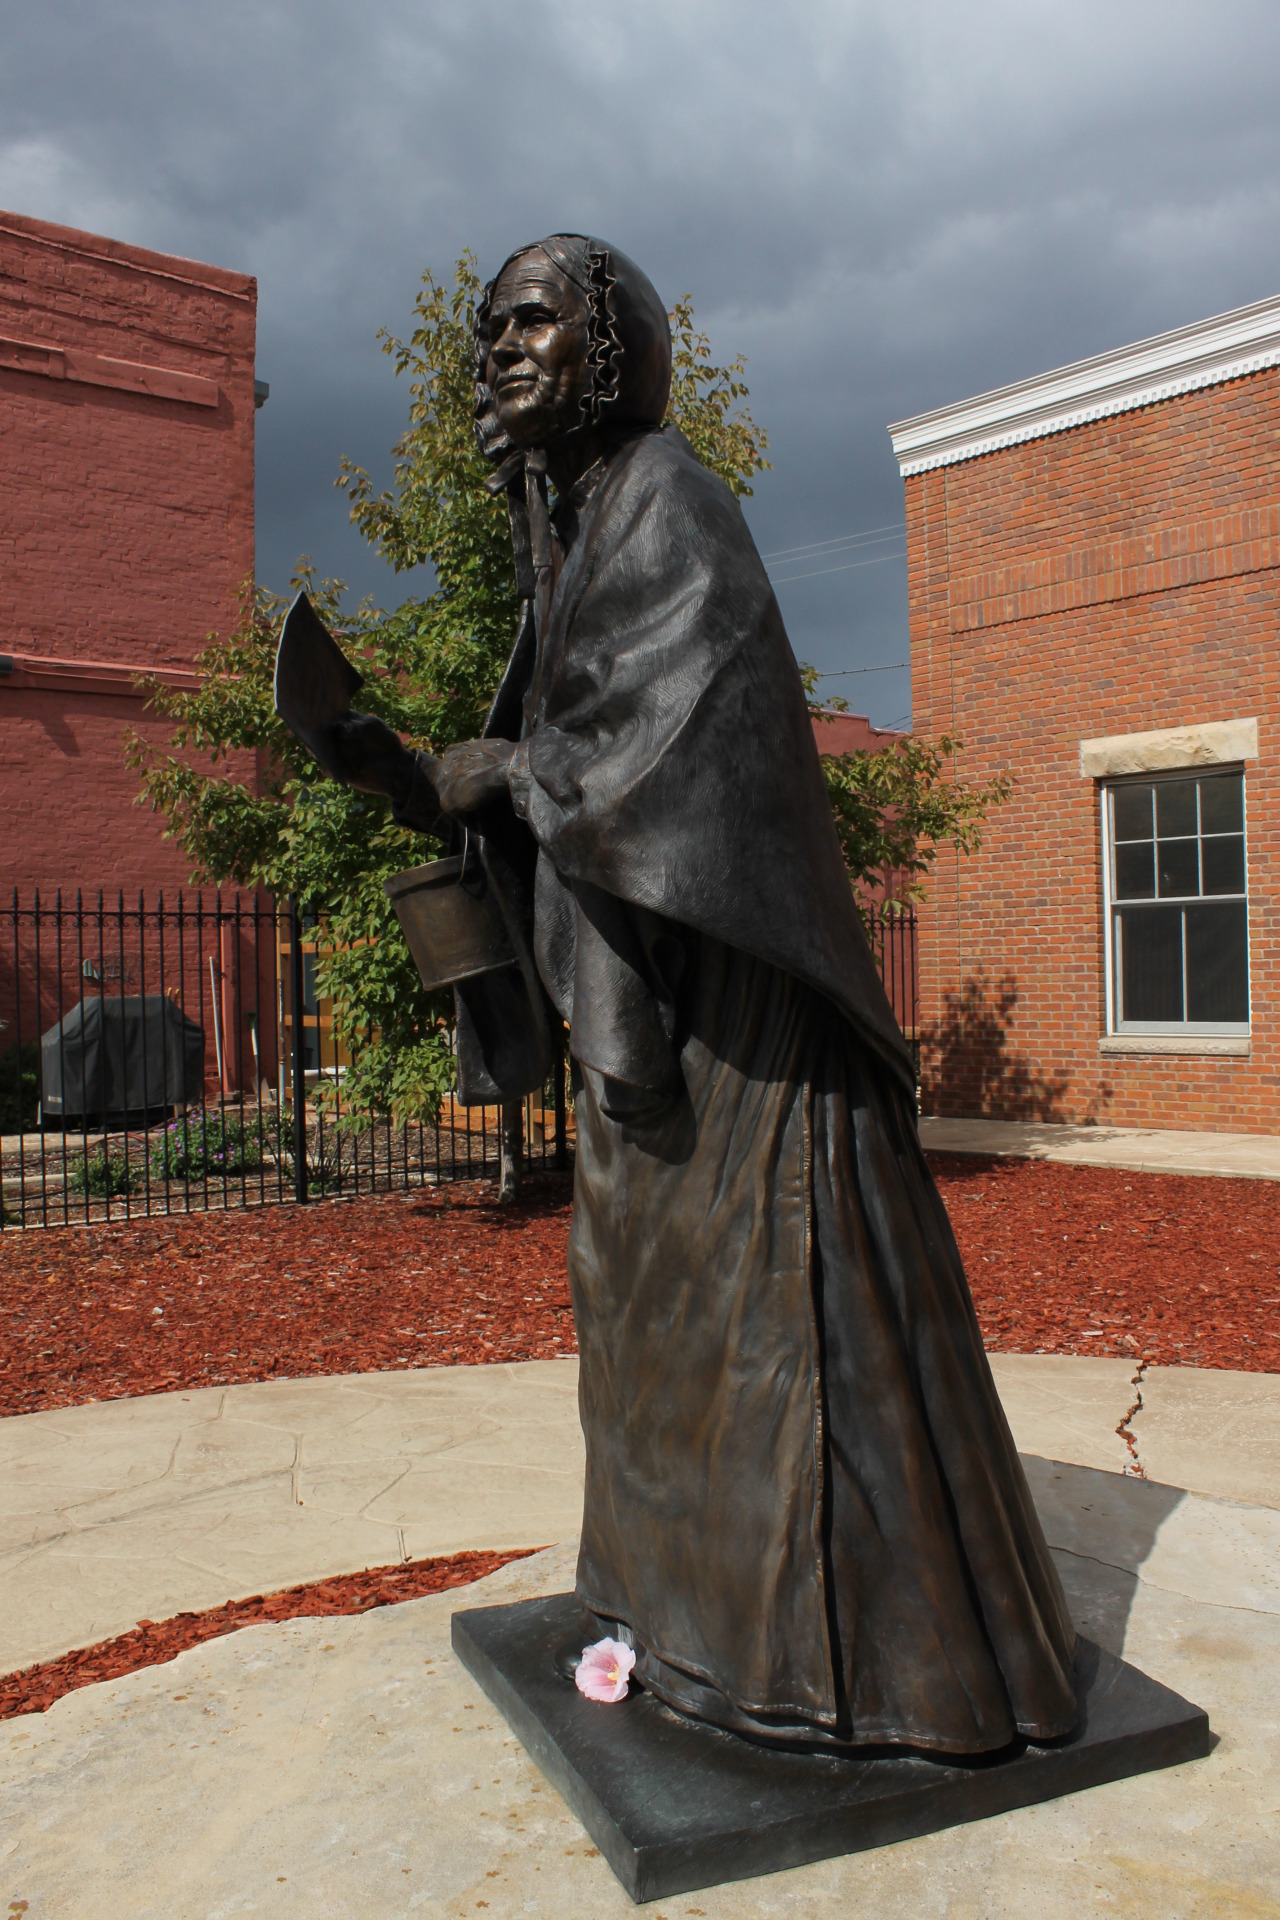 Caption: A statue of Louisa Swain, the first woman to cast a ballot. Swain lived in Laramie, WY.